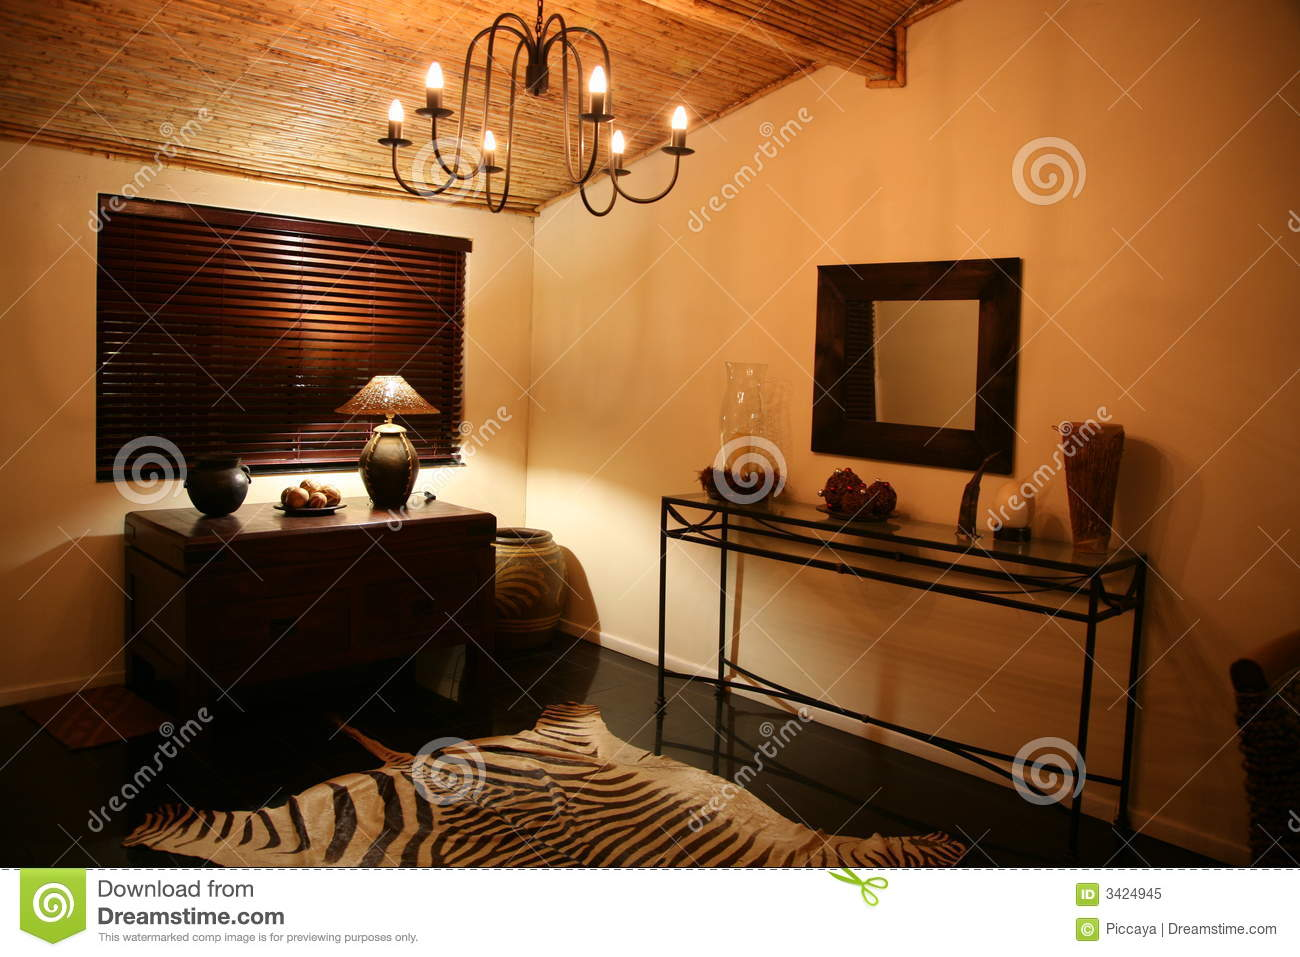 African Interior Design Royalty Free Stock Photo